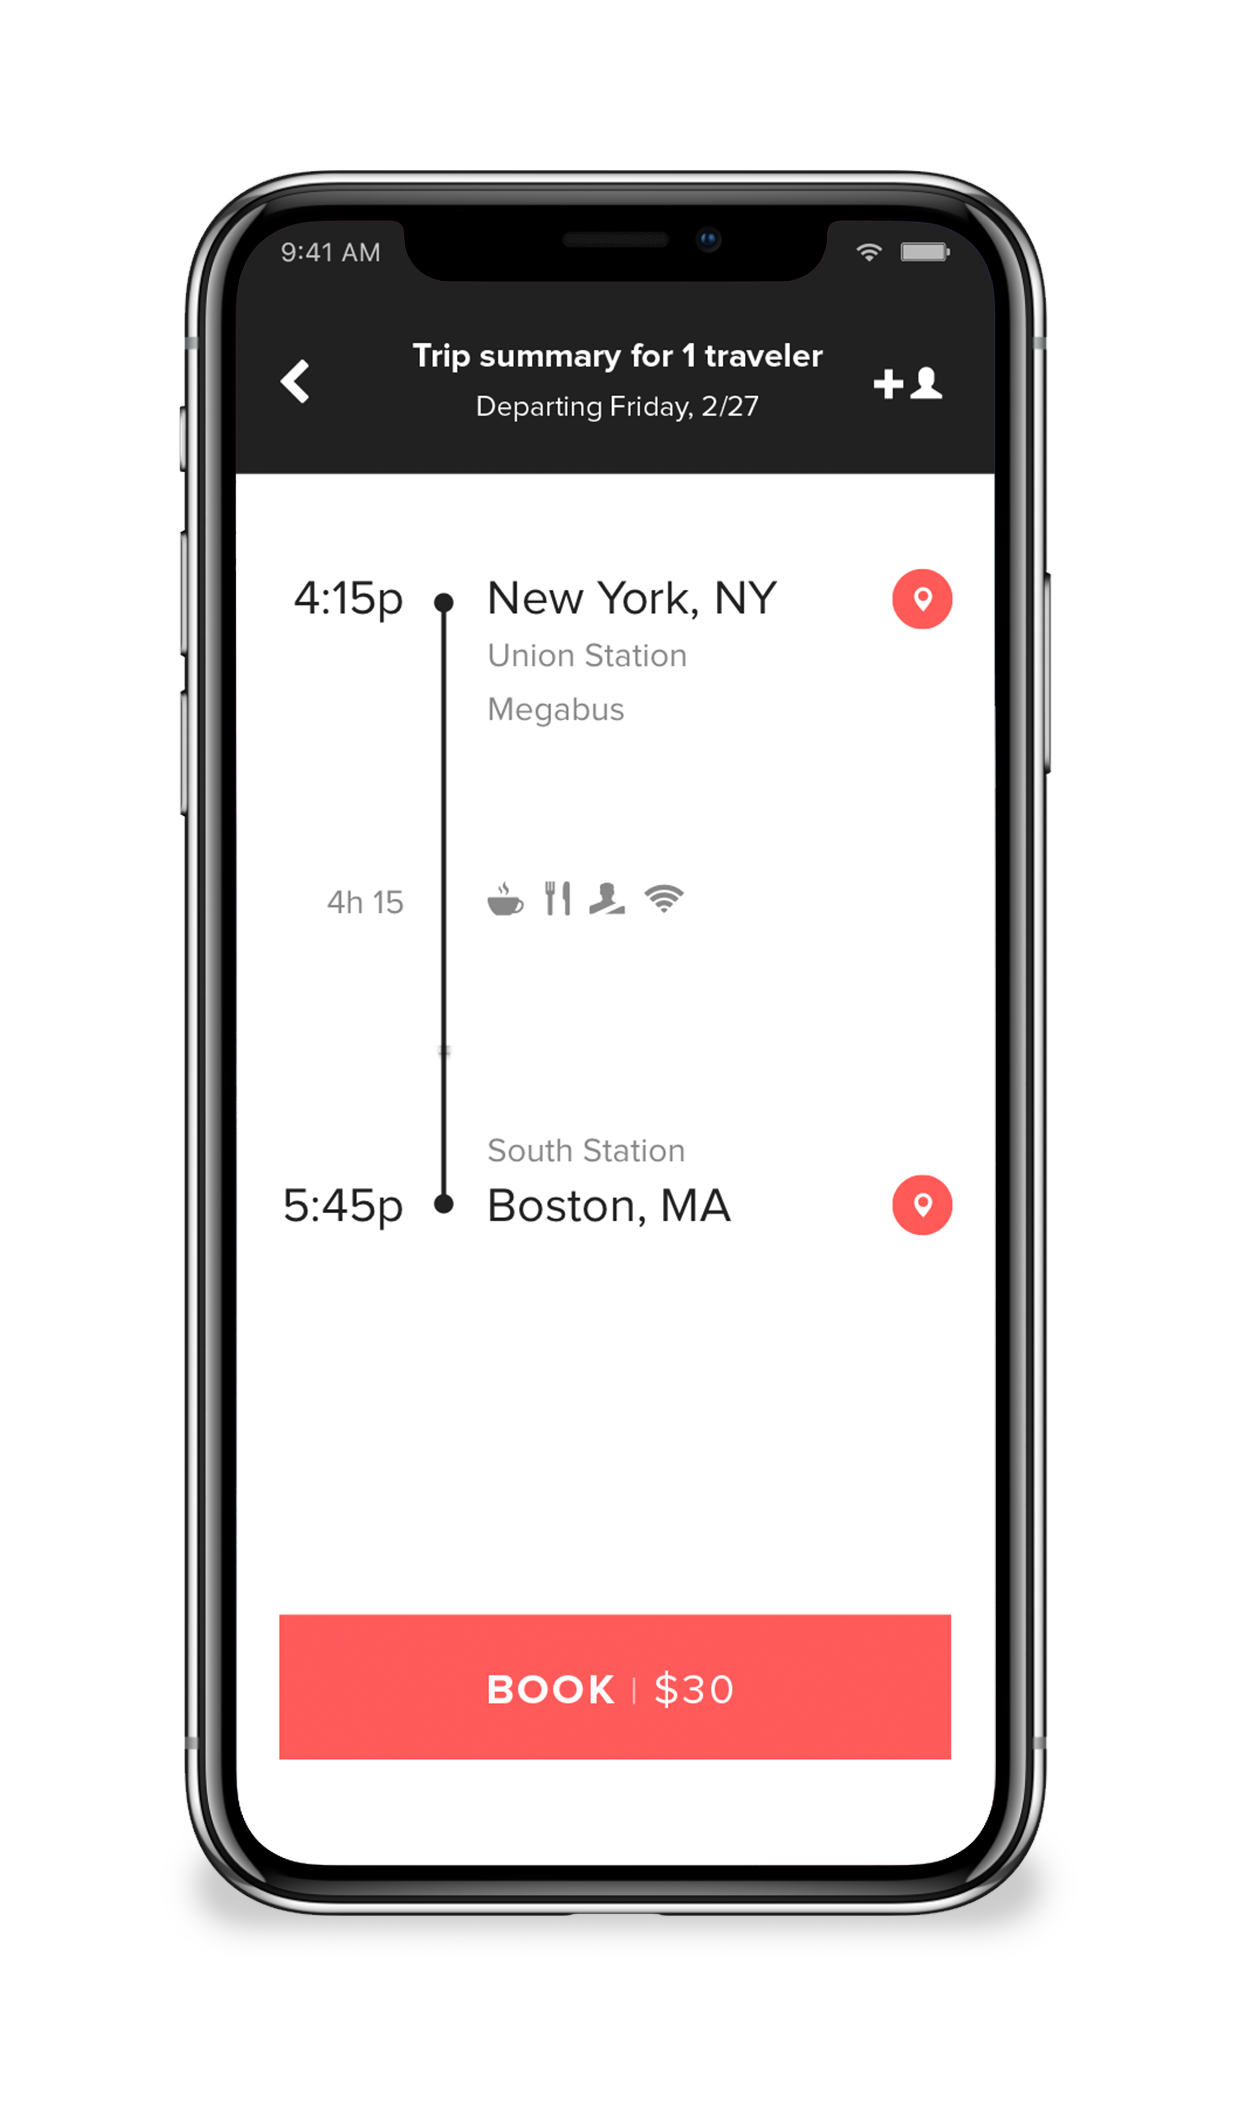 Trip summary - This screen gives the user detailed information about their trip including travel duration, amenities, station locations, directions and travel times.